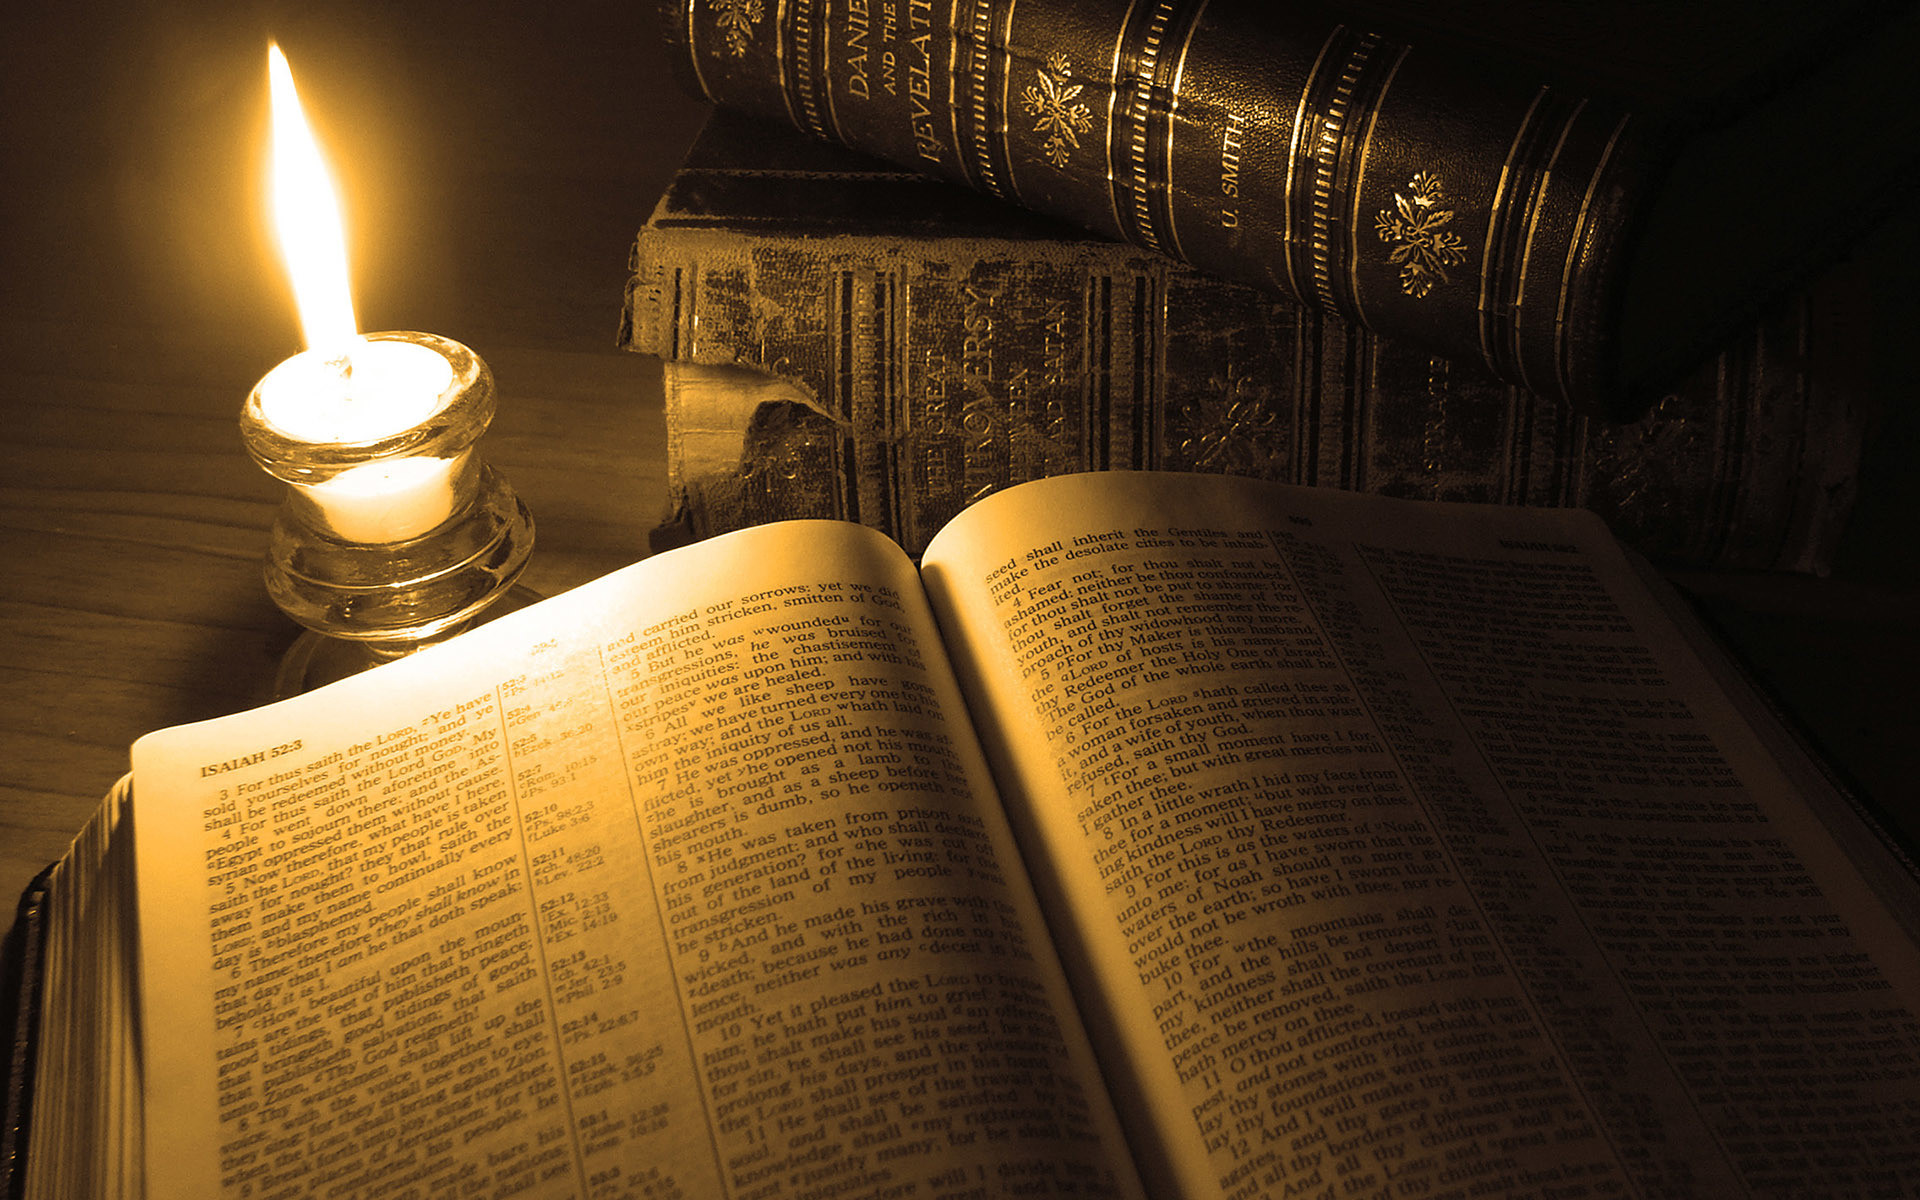 … Reading at the candle light